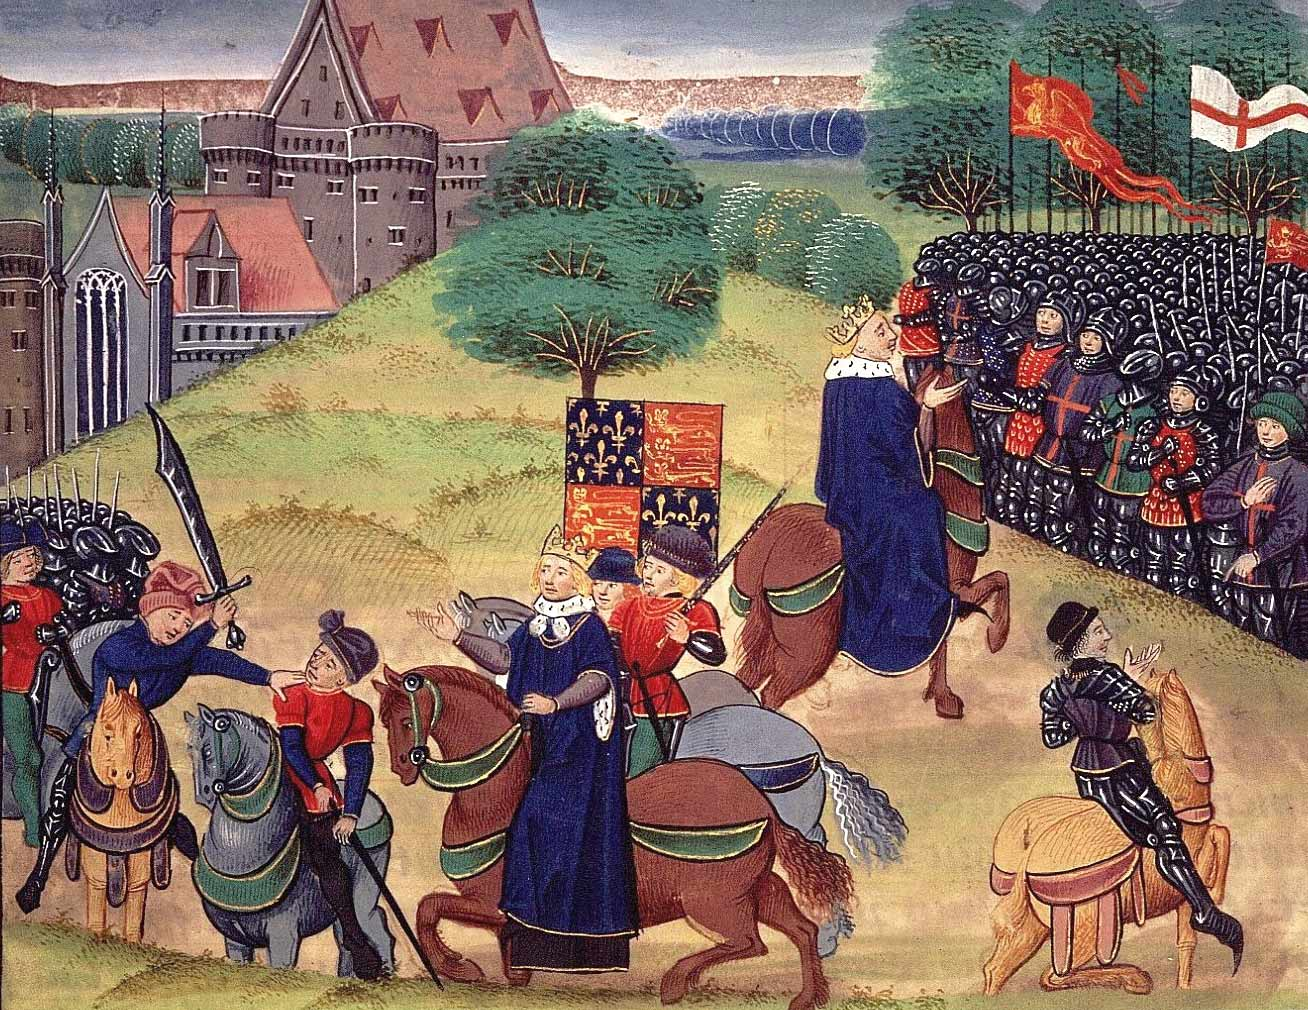 Wat Tyler and the Peasants Revolt — Wat Tyler Country Park